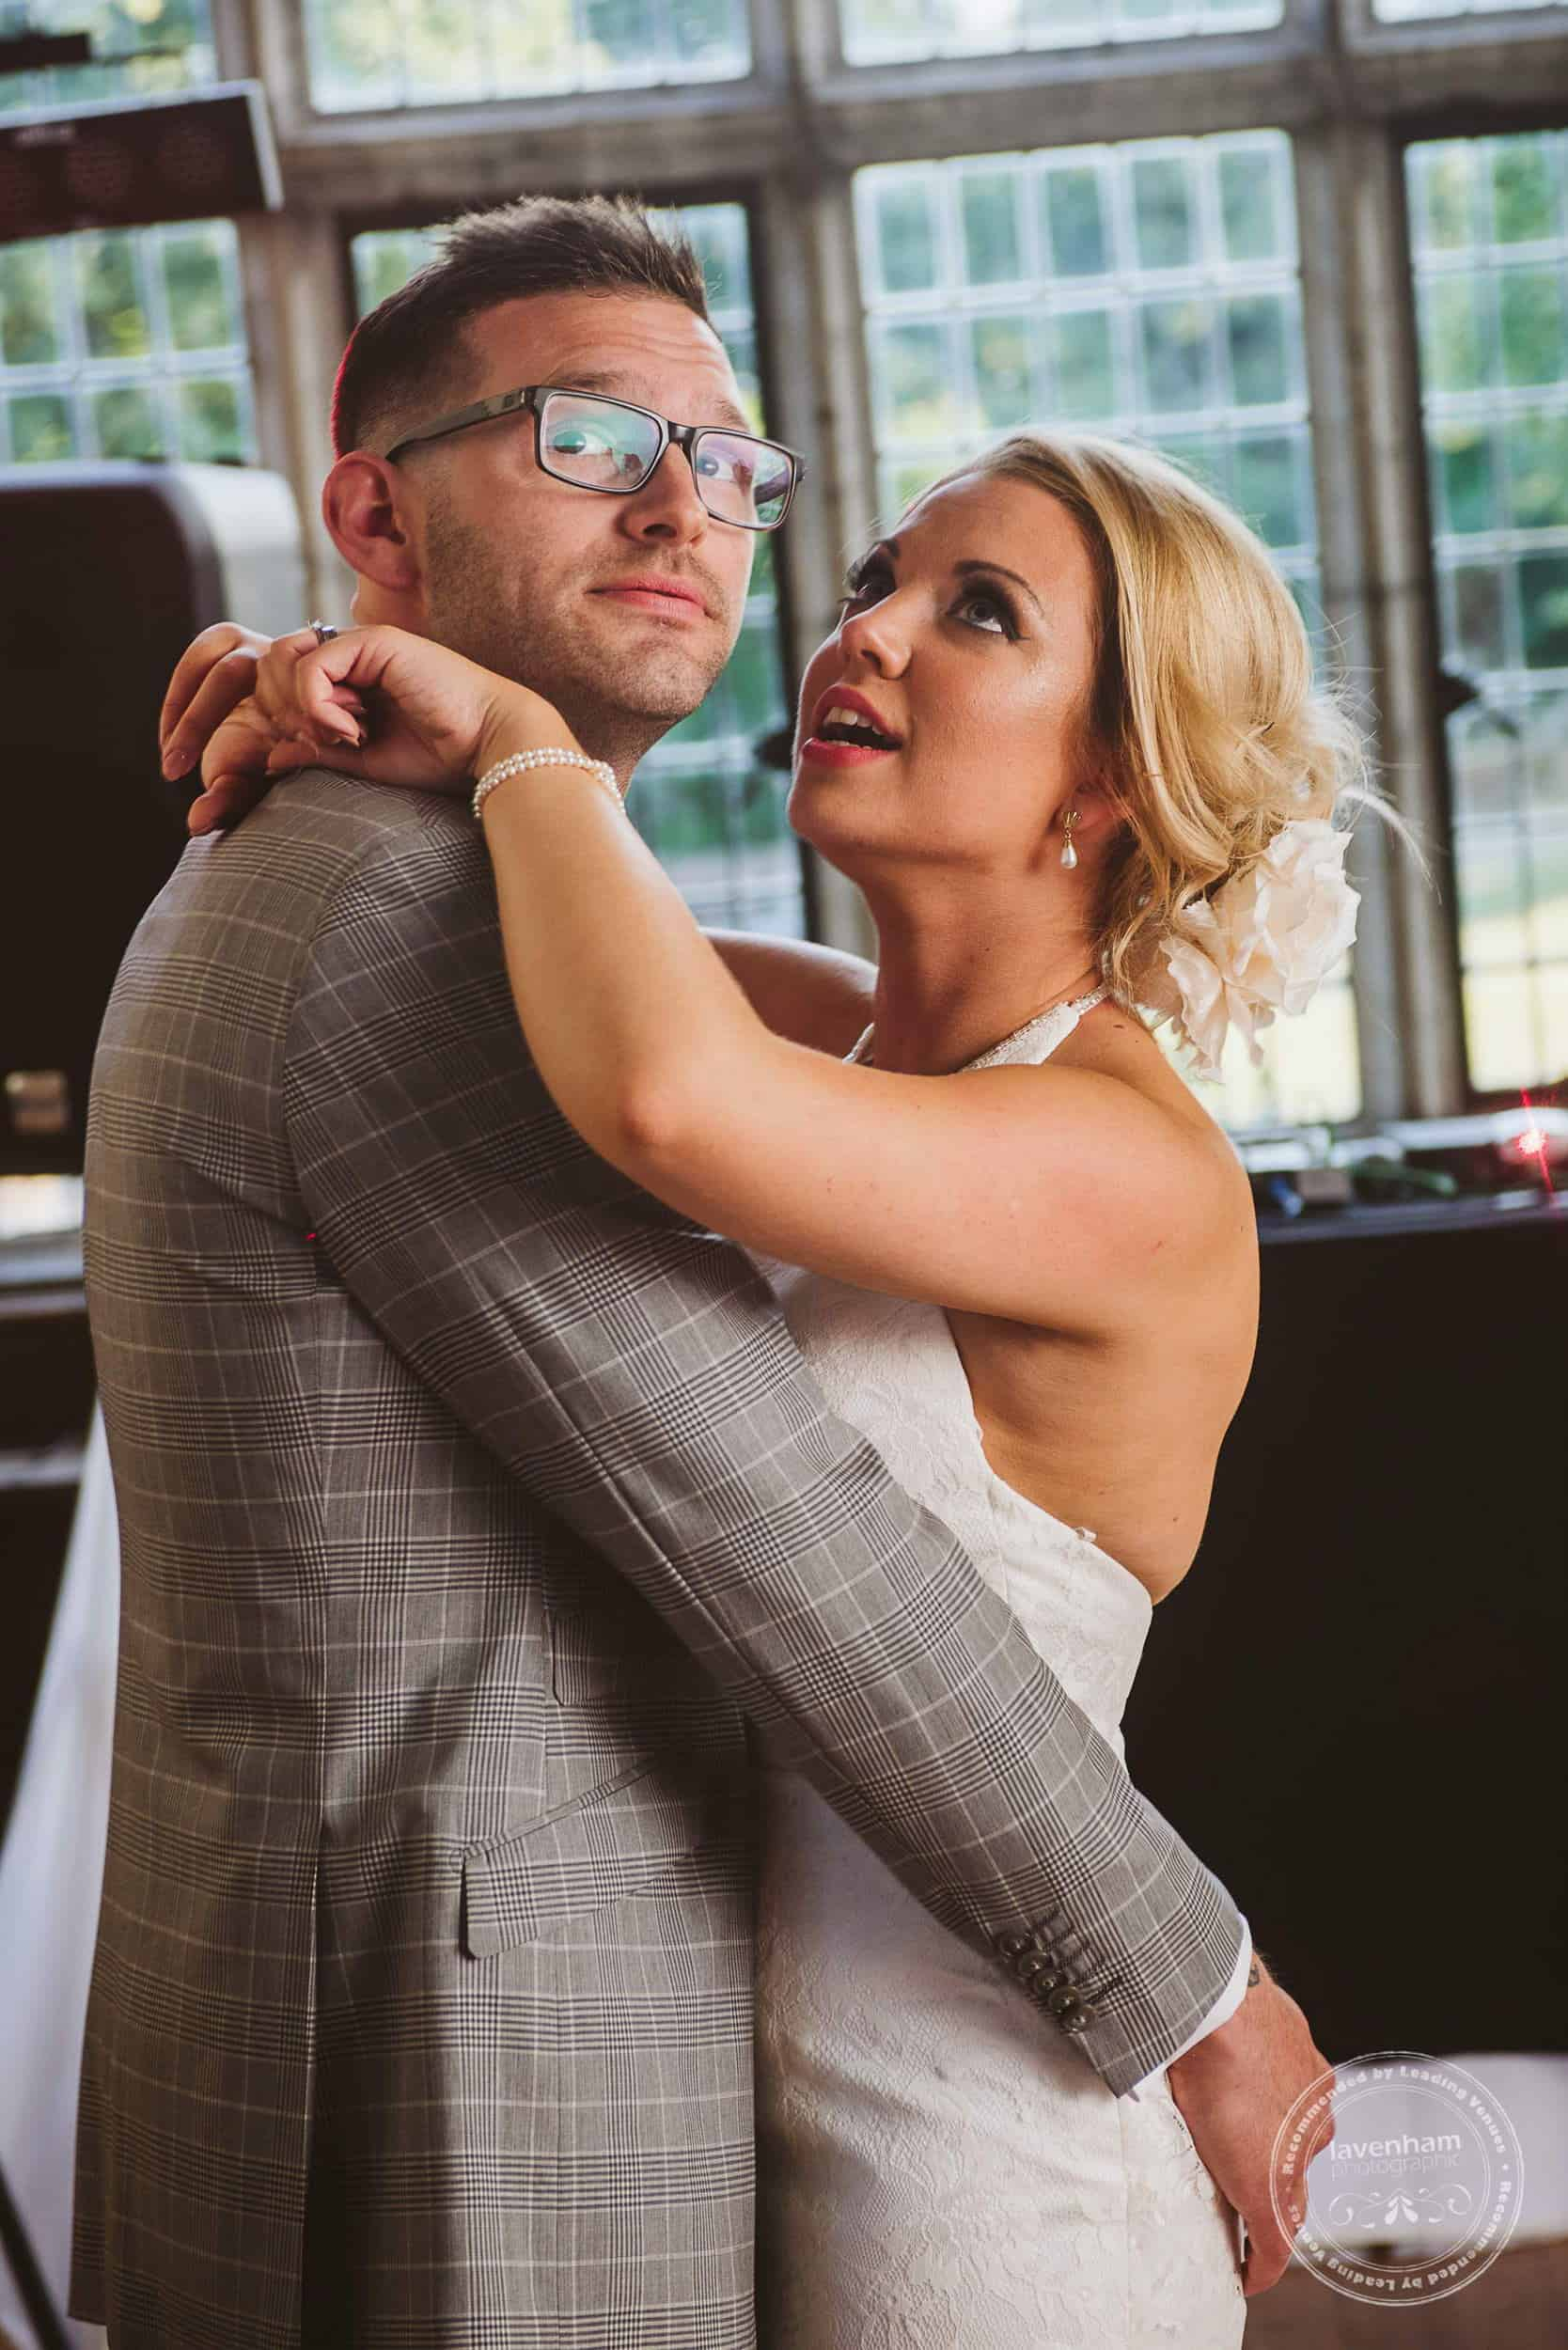 140717 Layer Marney Wedding Photography by Lavenham Photographic 111